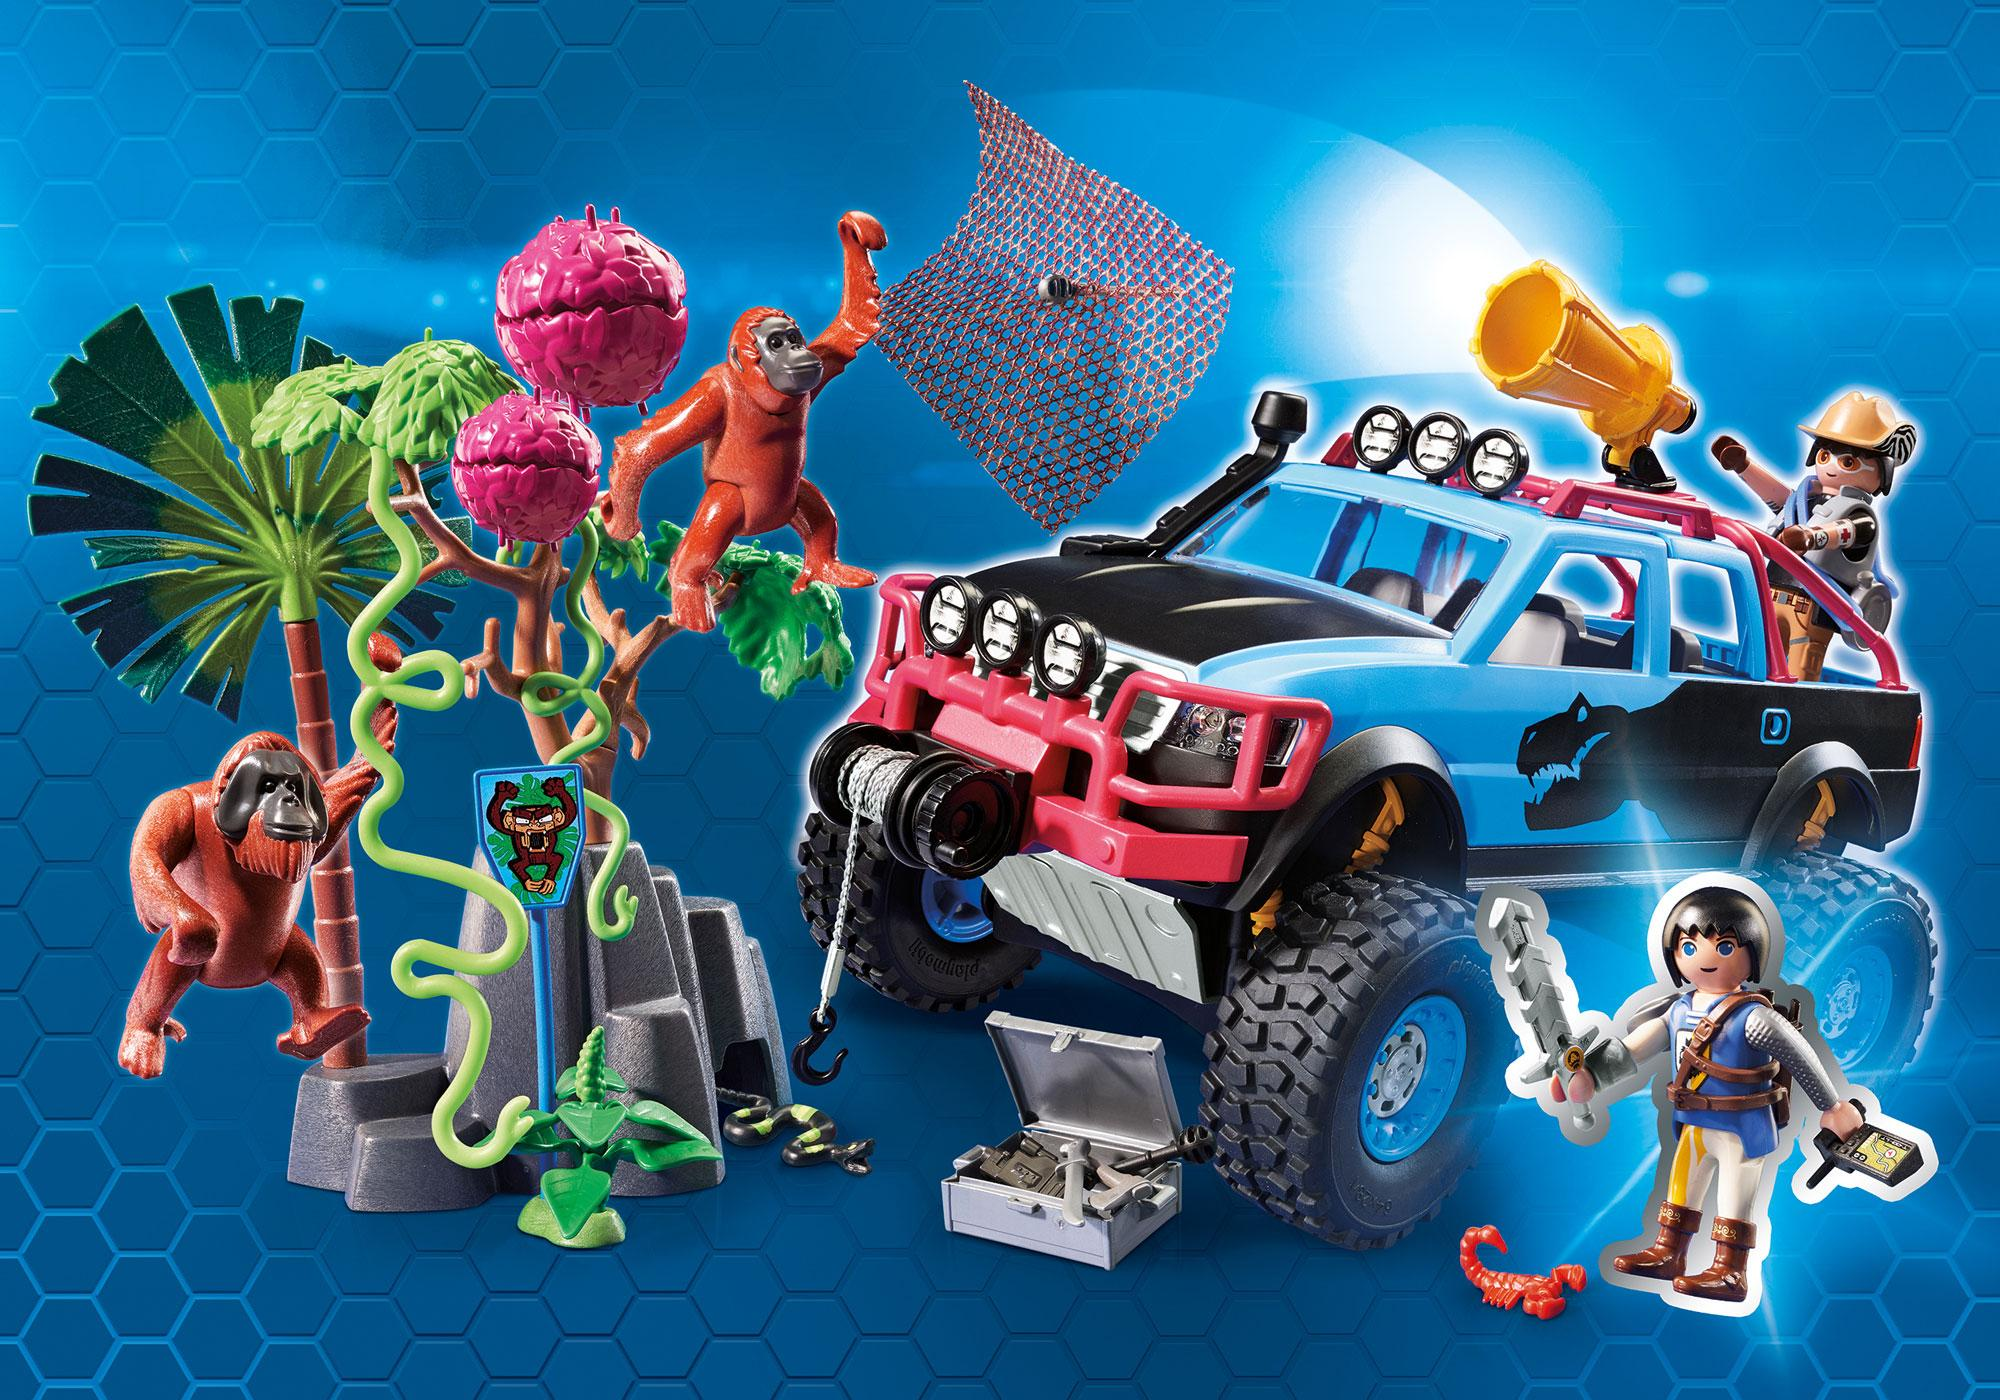 9407_product_detail/Monster Truck mit Alex und Rock Brock